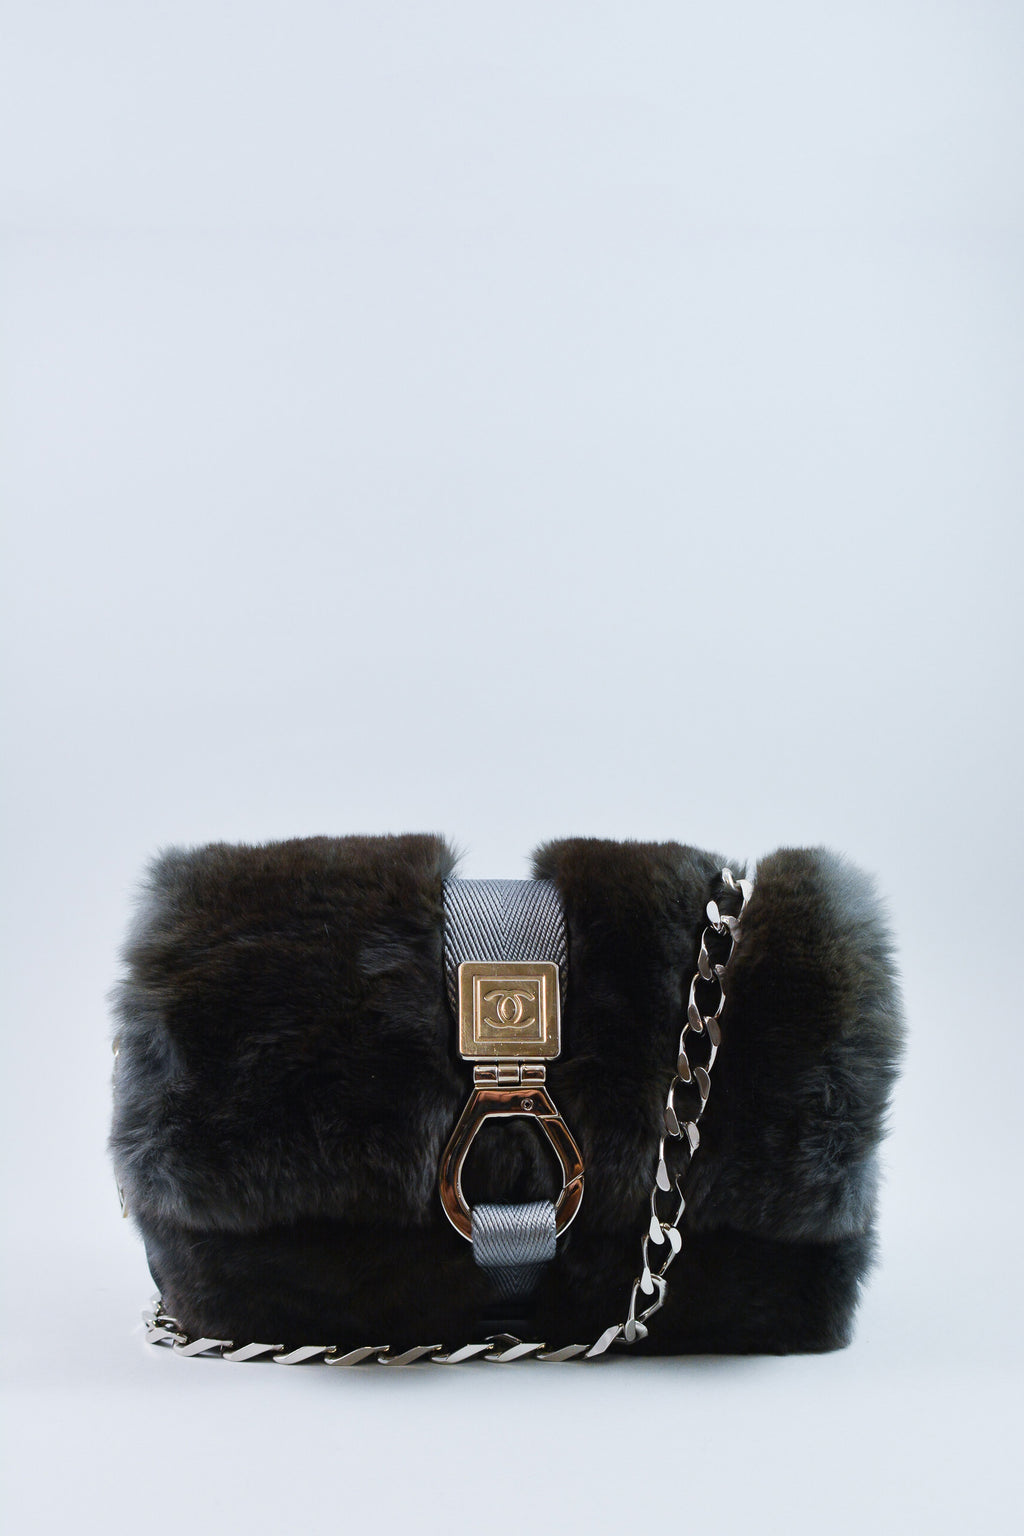 Chanel Rabbit Fur Flap Bag w/ CC Clasp Closure